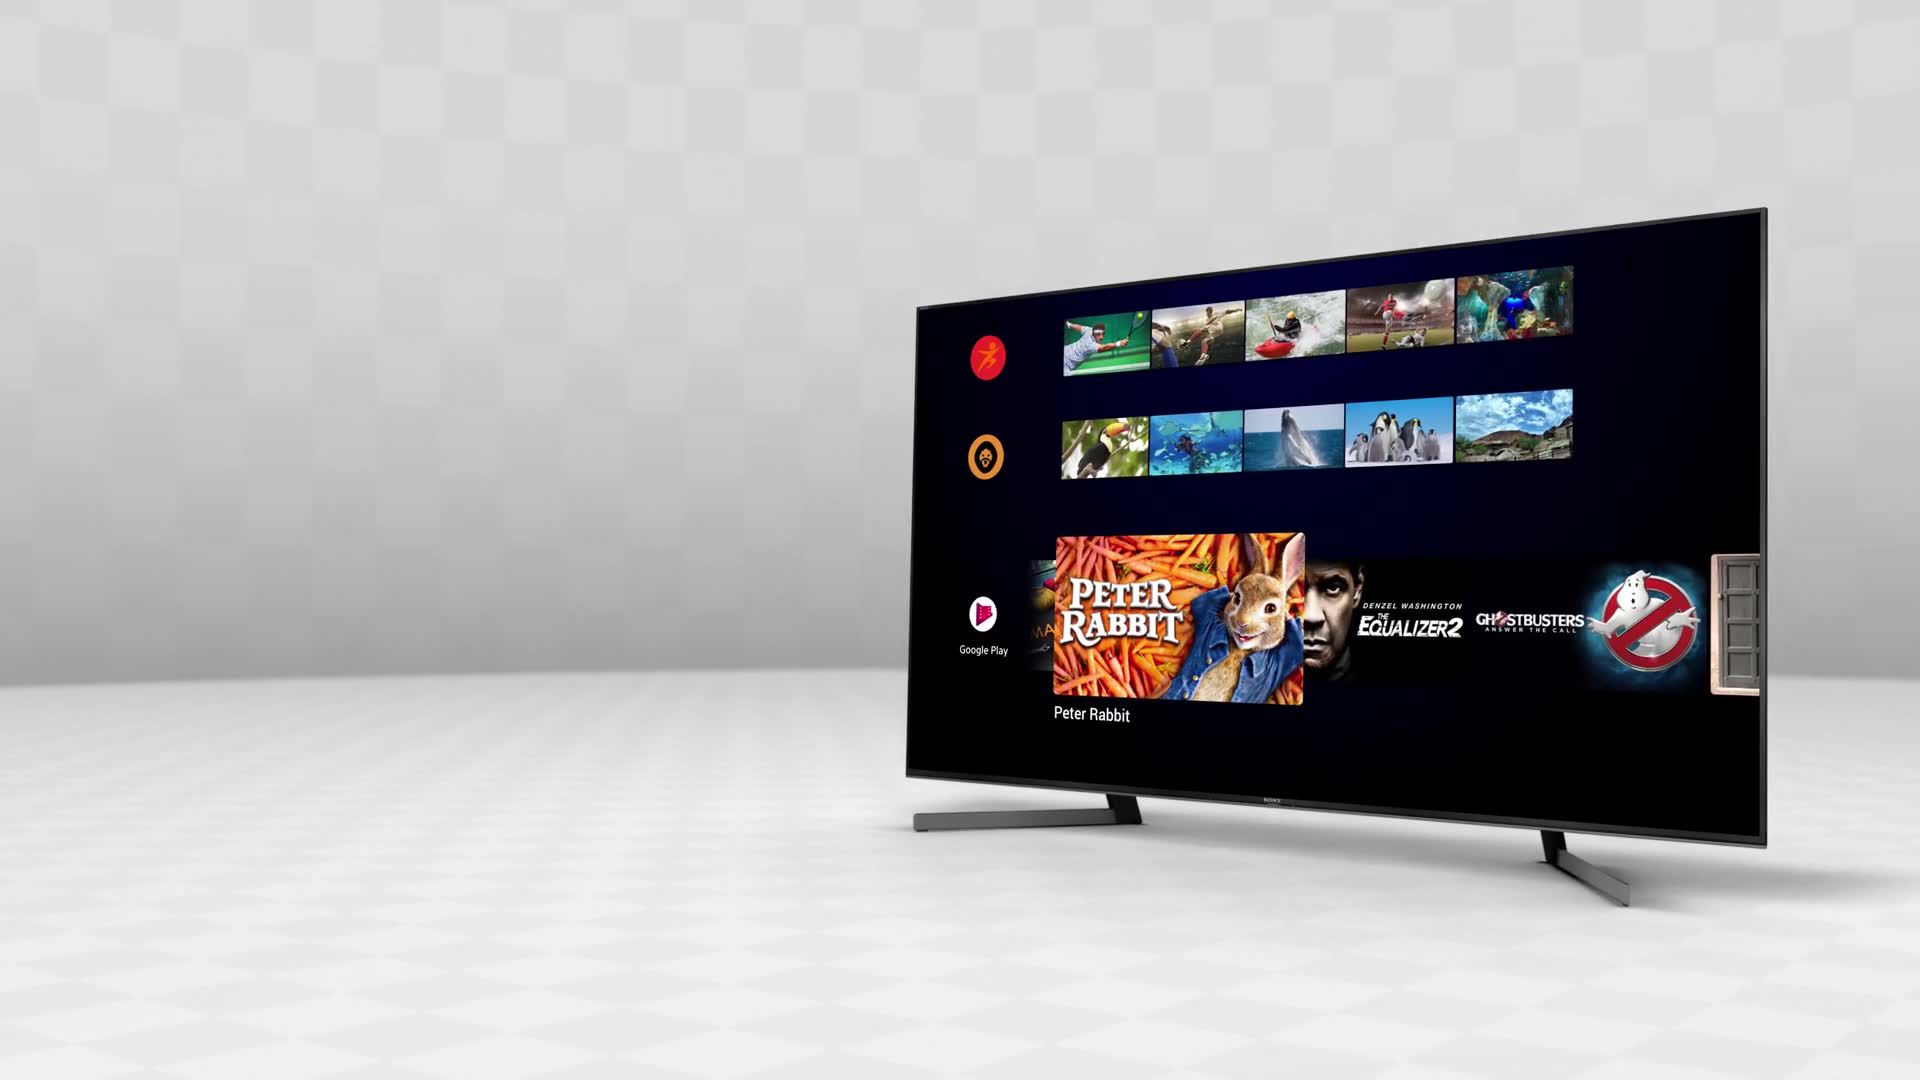 Sony Bravia KD65AG8 (2019) OLED HDR 4K Ultra HD Smart Android TV, 65